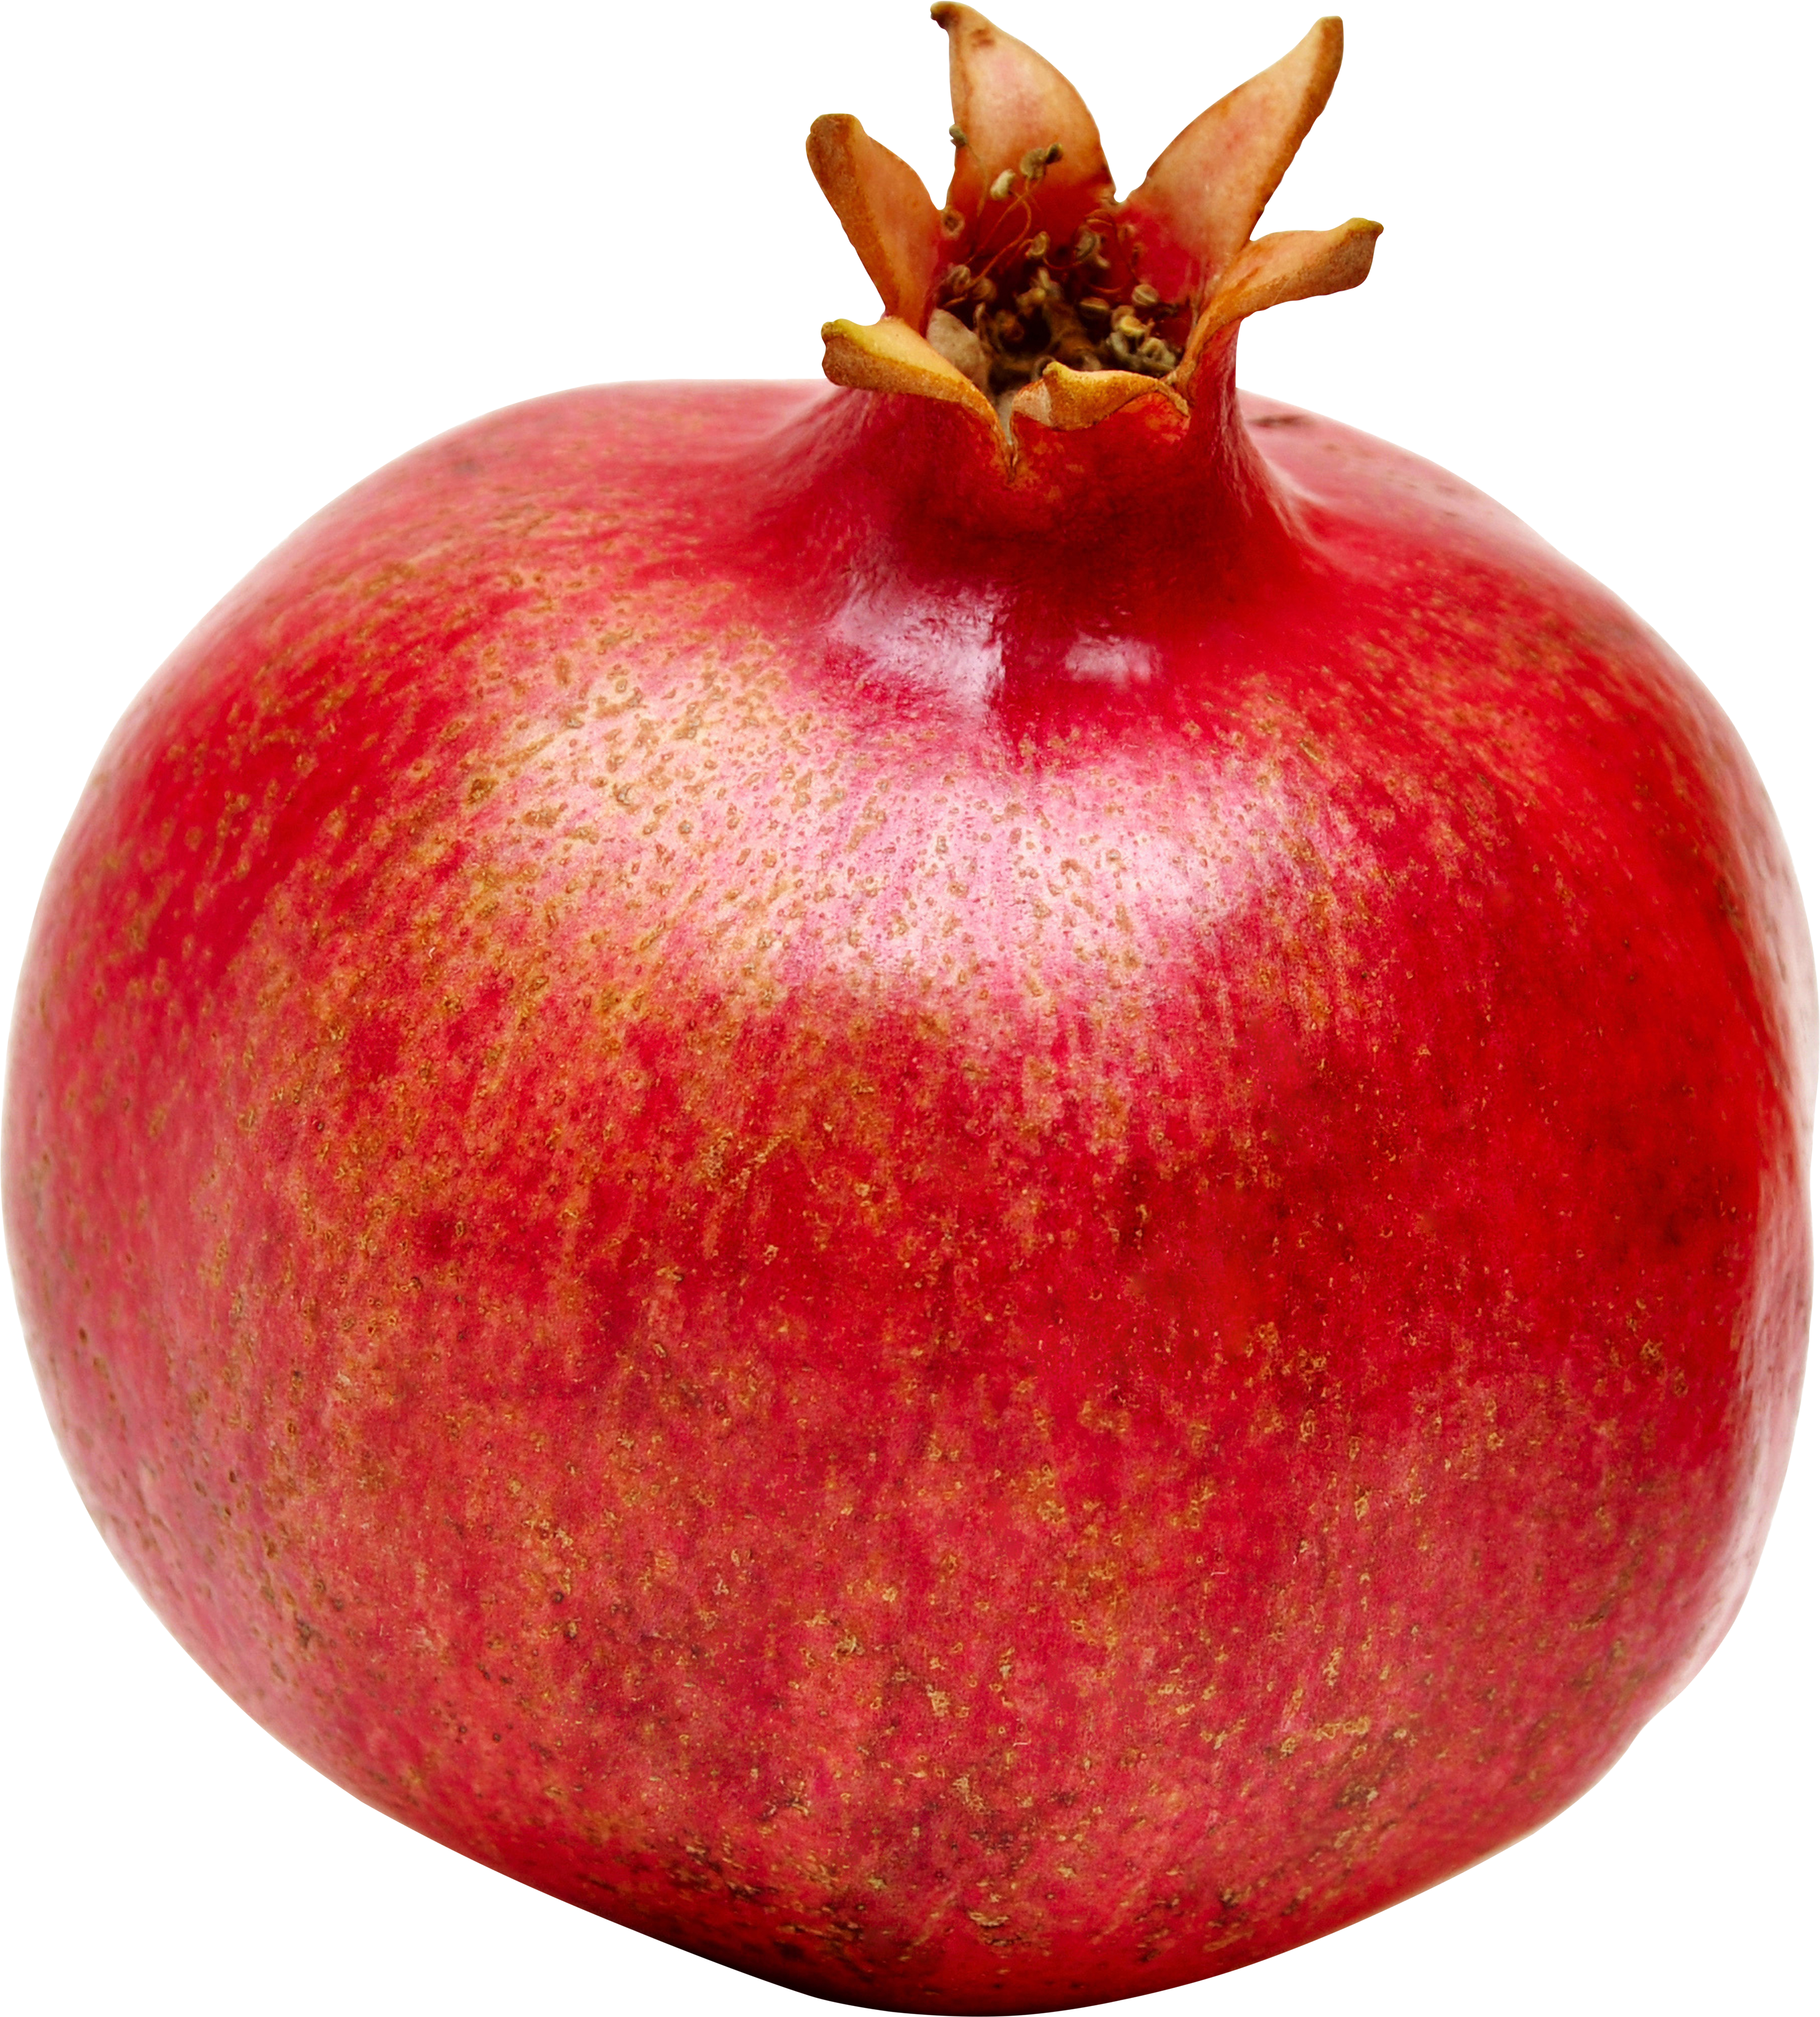 Pomegranate tree clipart clipart royalty free library Pomegranate PNG images free download clipart royalty free library